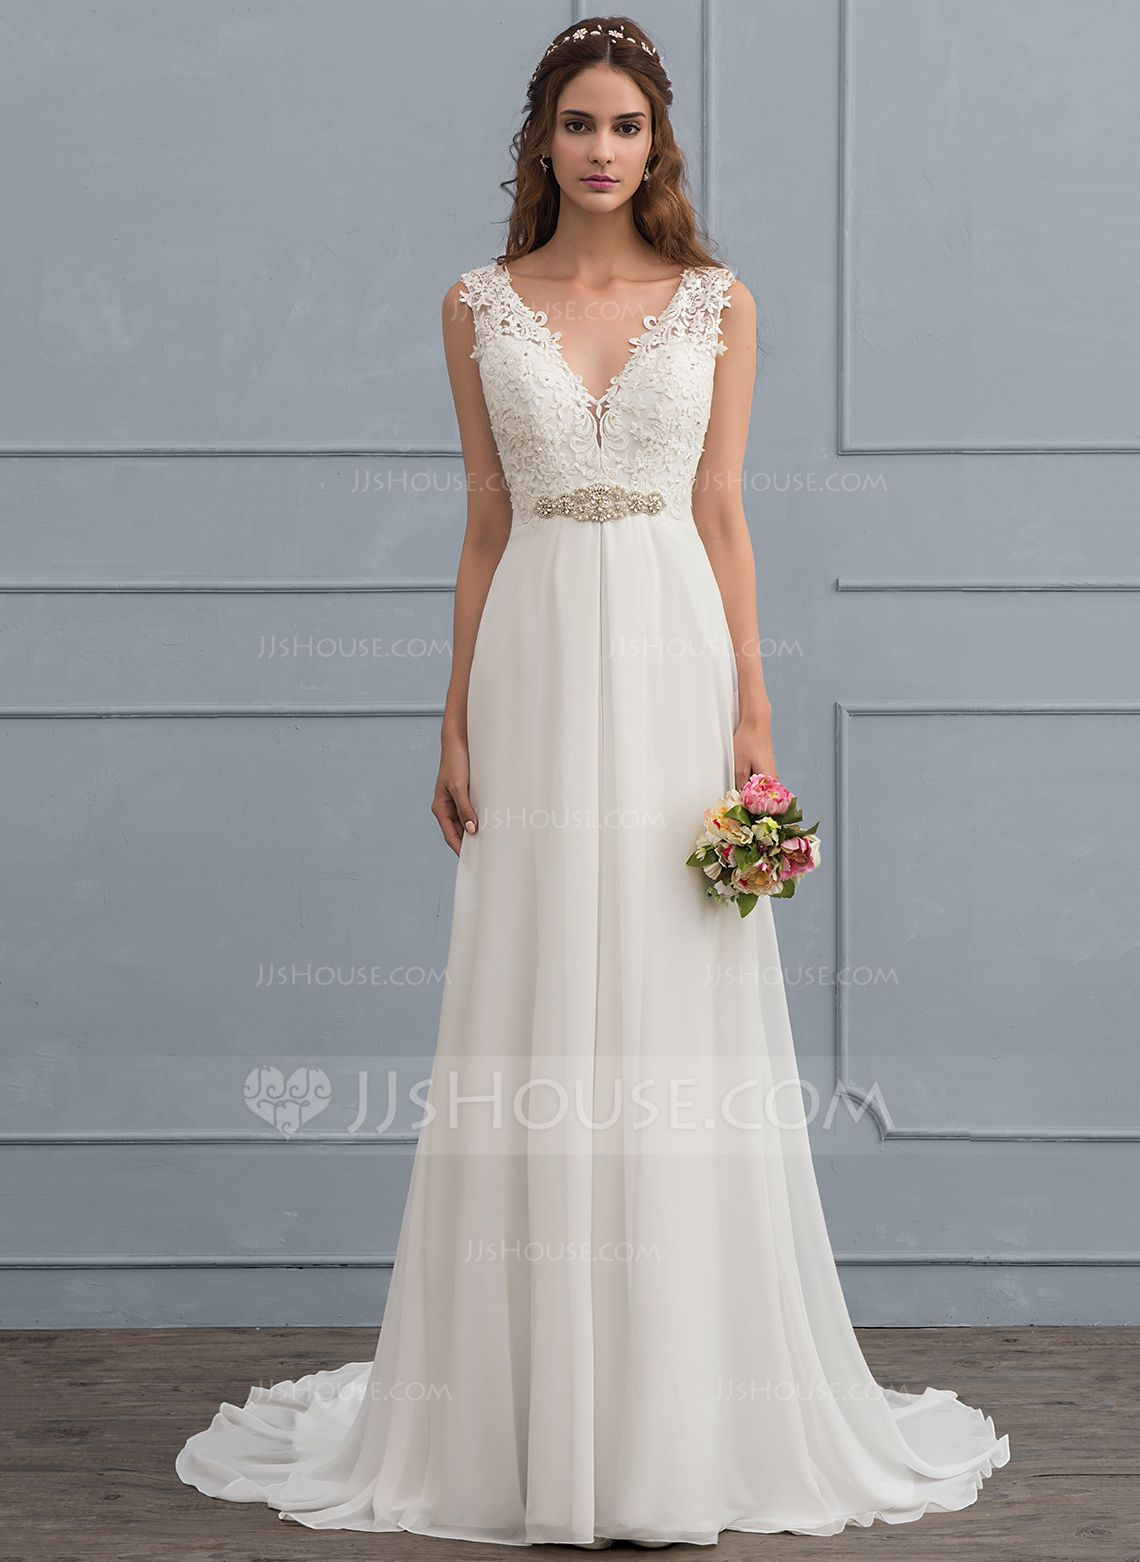 Us 192 00 A Line V Neck Court Train Chiffon Wedding Dress With Beading Sequins Jj S House Perfect Wedding Dress Simple Wedding Gowns Wedding Dresses Simple [ 1562 x 1140 Pixel ]